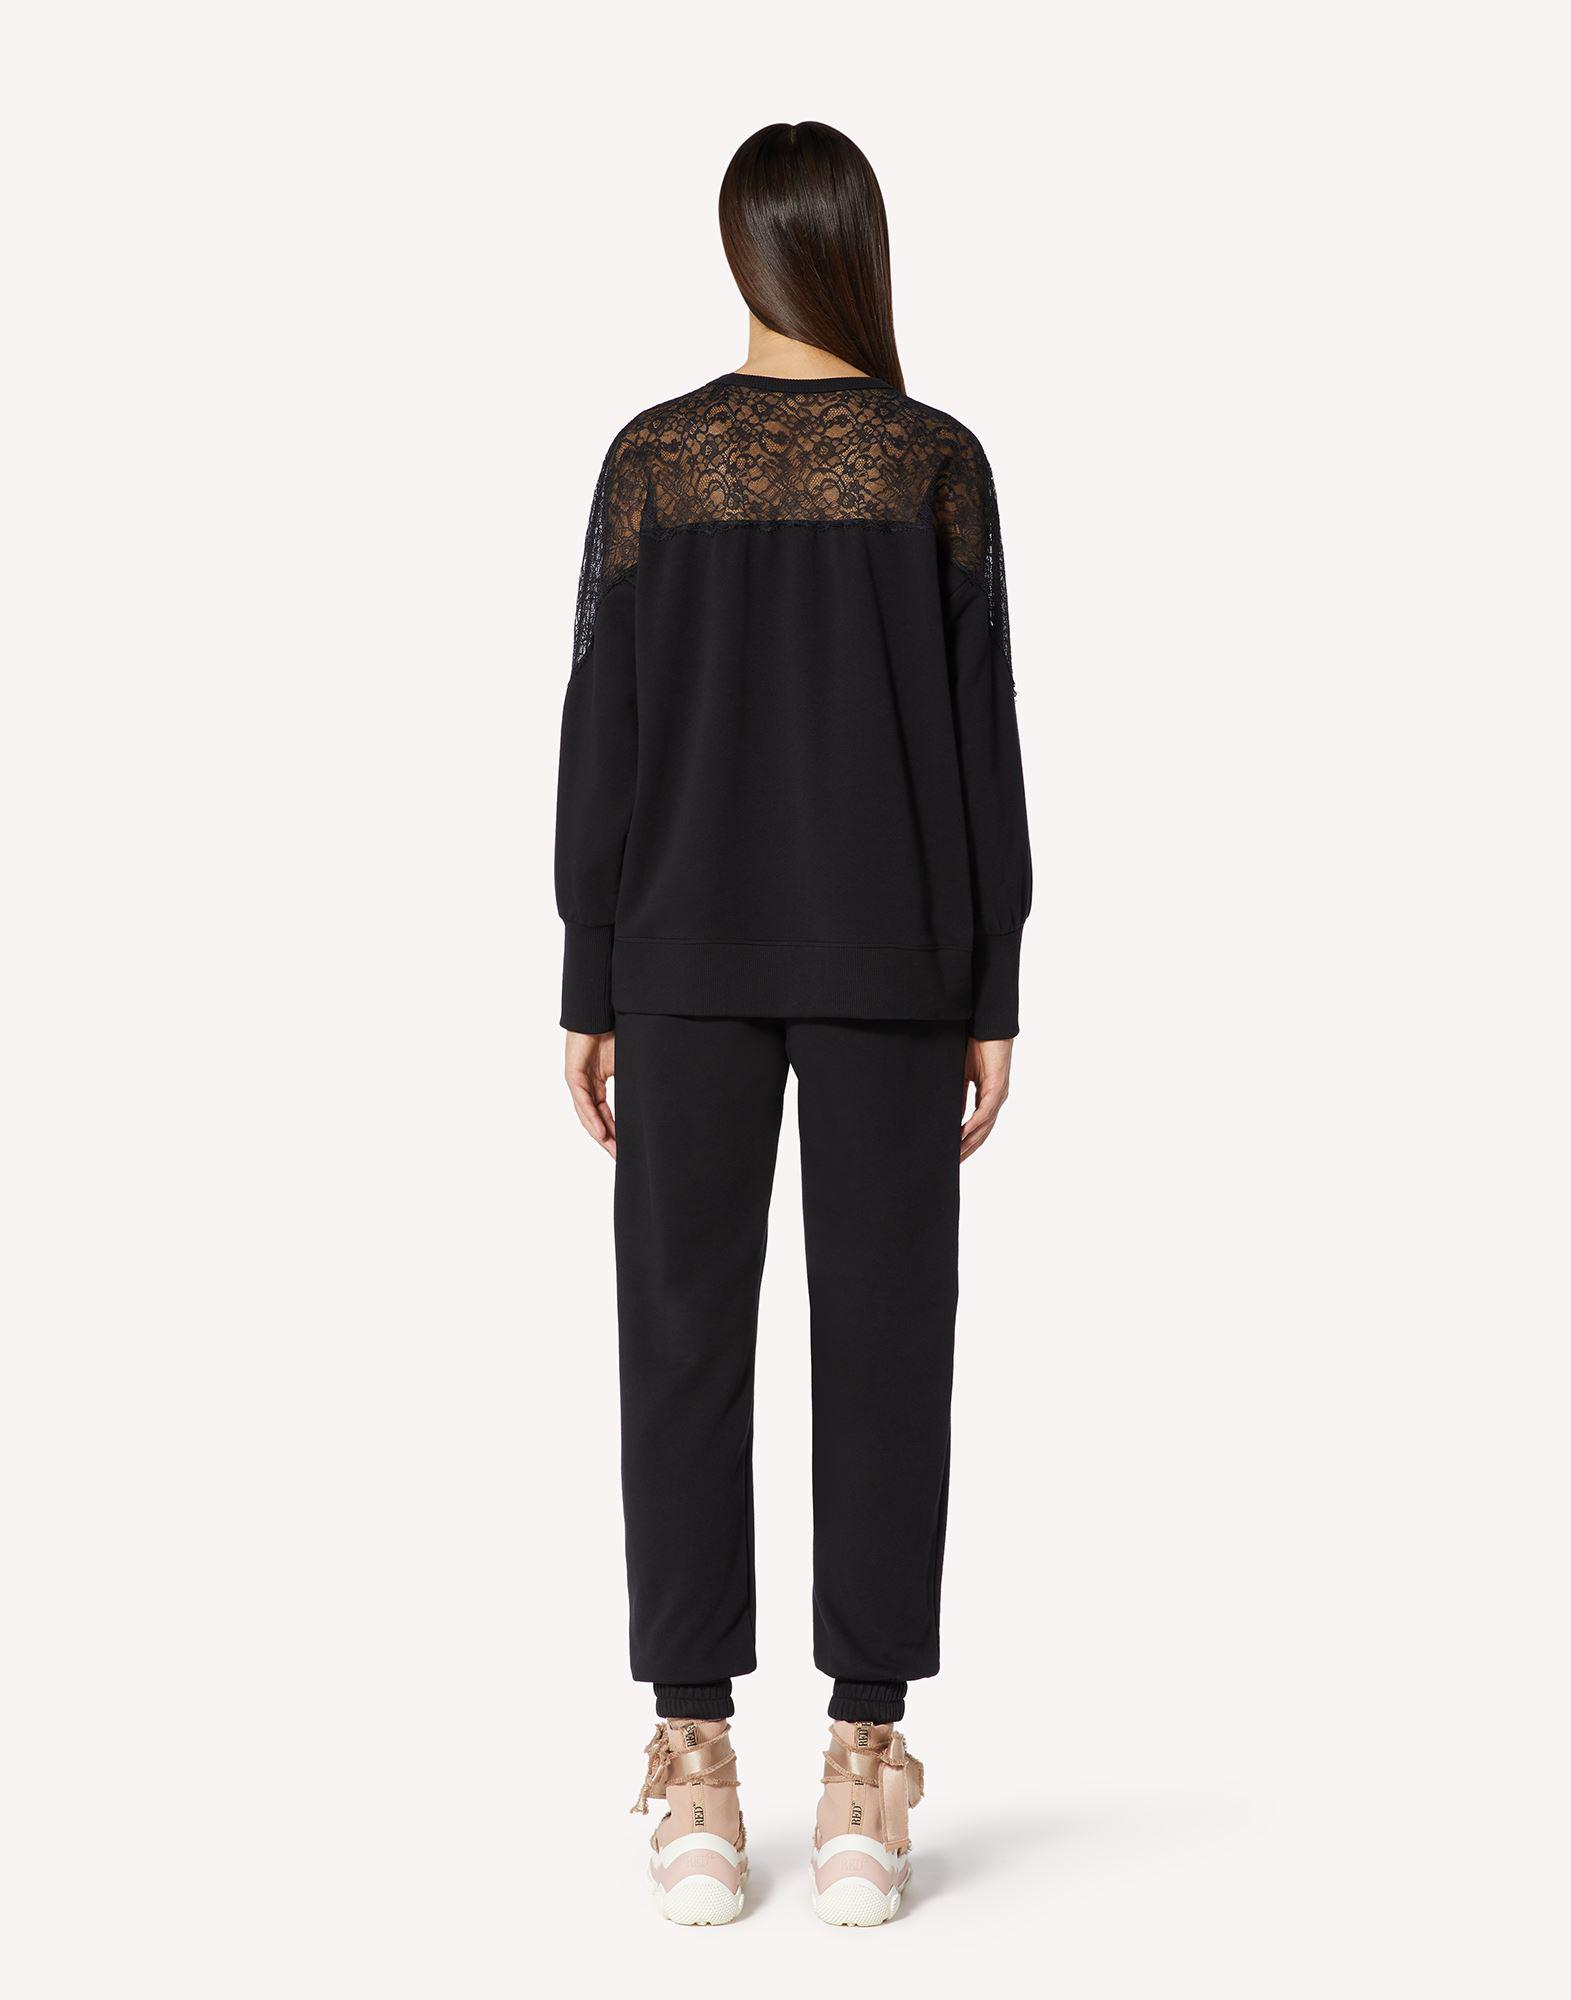 SWEATSHIRT WITH LACE 1